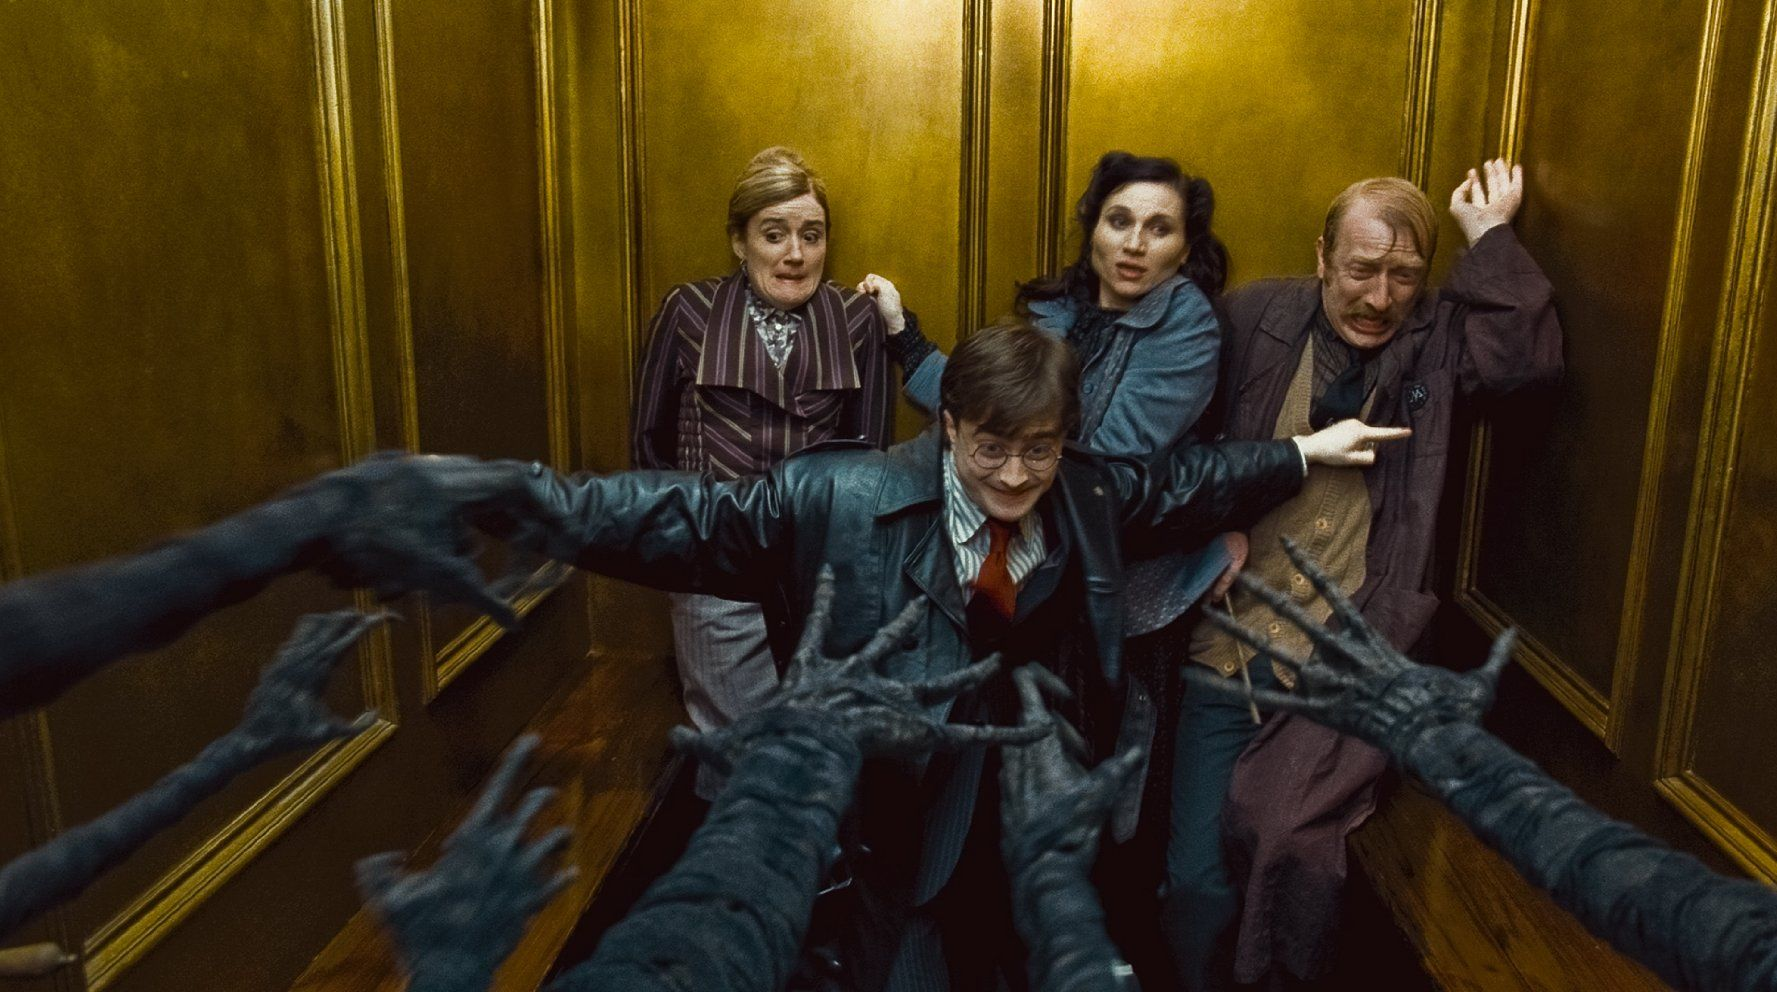 Harry Potter And The Deathly Hallows Part 1 2010 Photo Gallery Imdb Harry Potter Scene Deathly Hallows Part 1 Harry Potter Movies